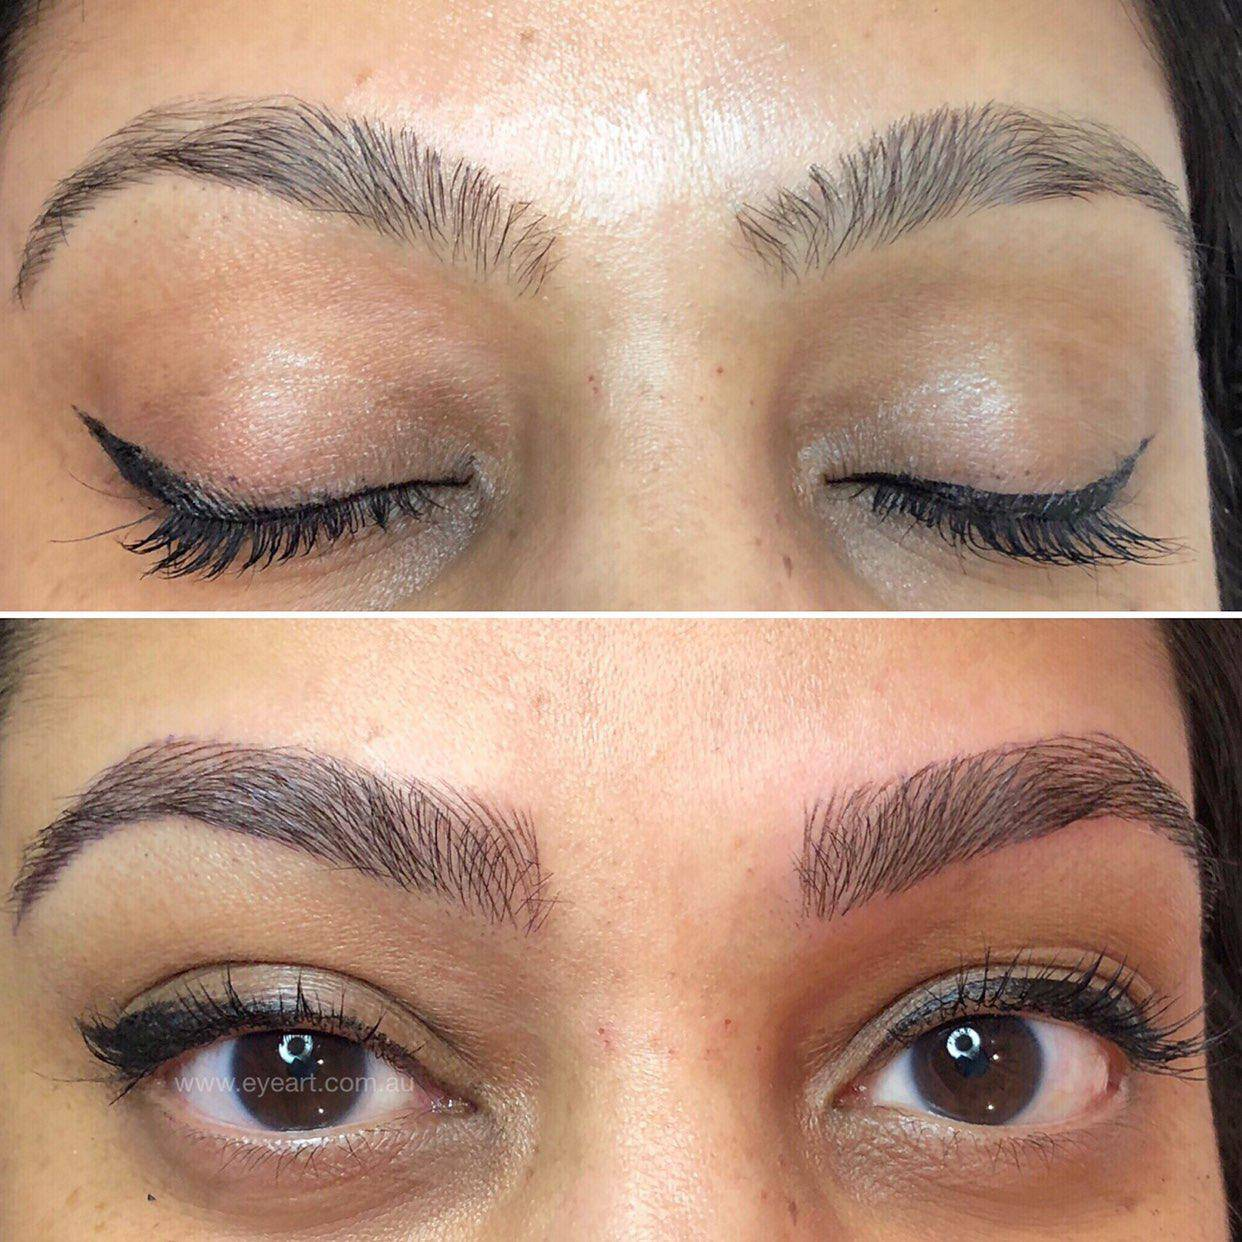 Best Eyebrow Microblading Places in Australia, Reviews, Prices and Photos